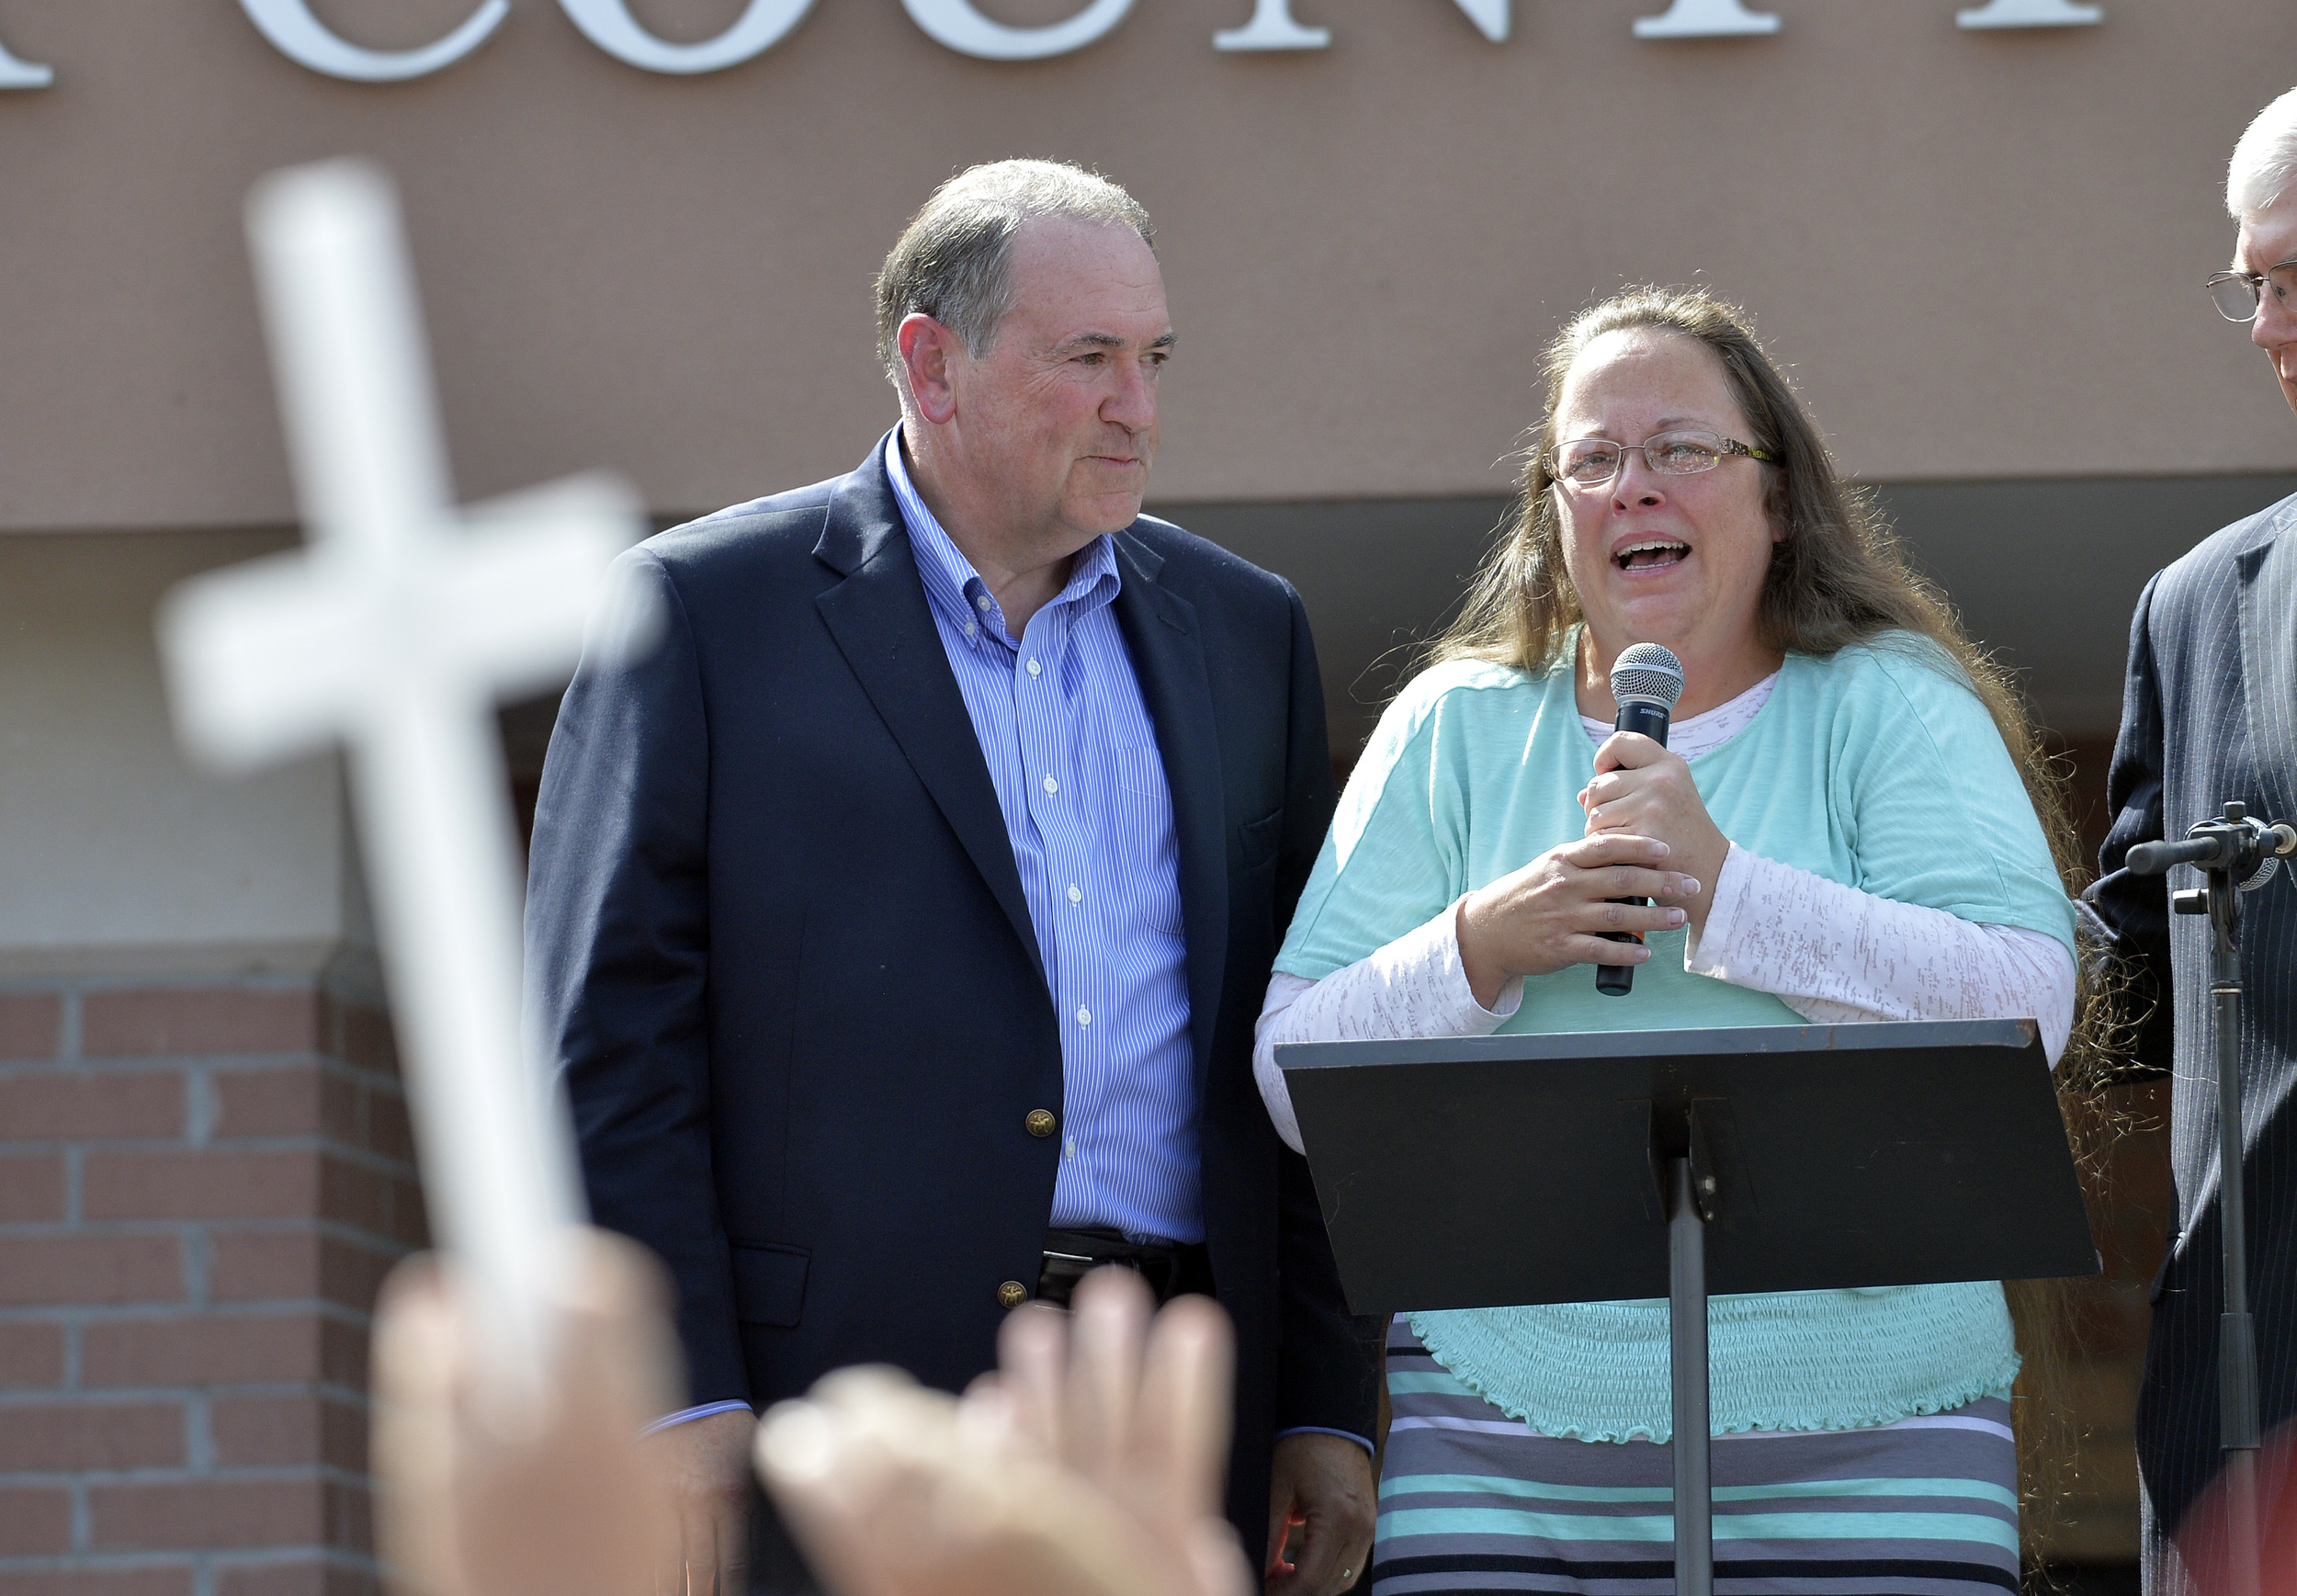 Kentucky Clerk Kim Davis, with Republican presidential candidate Mike Huckabee at her side,greets a crowd of supporters after being released from jail on Sept. 8. (Photo: AP)